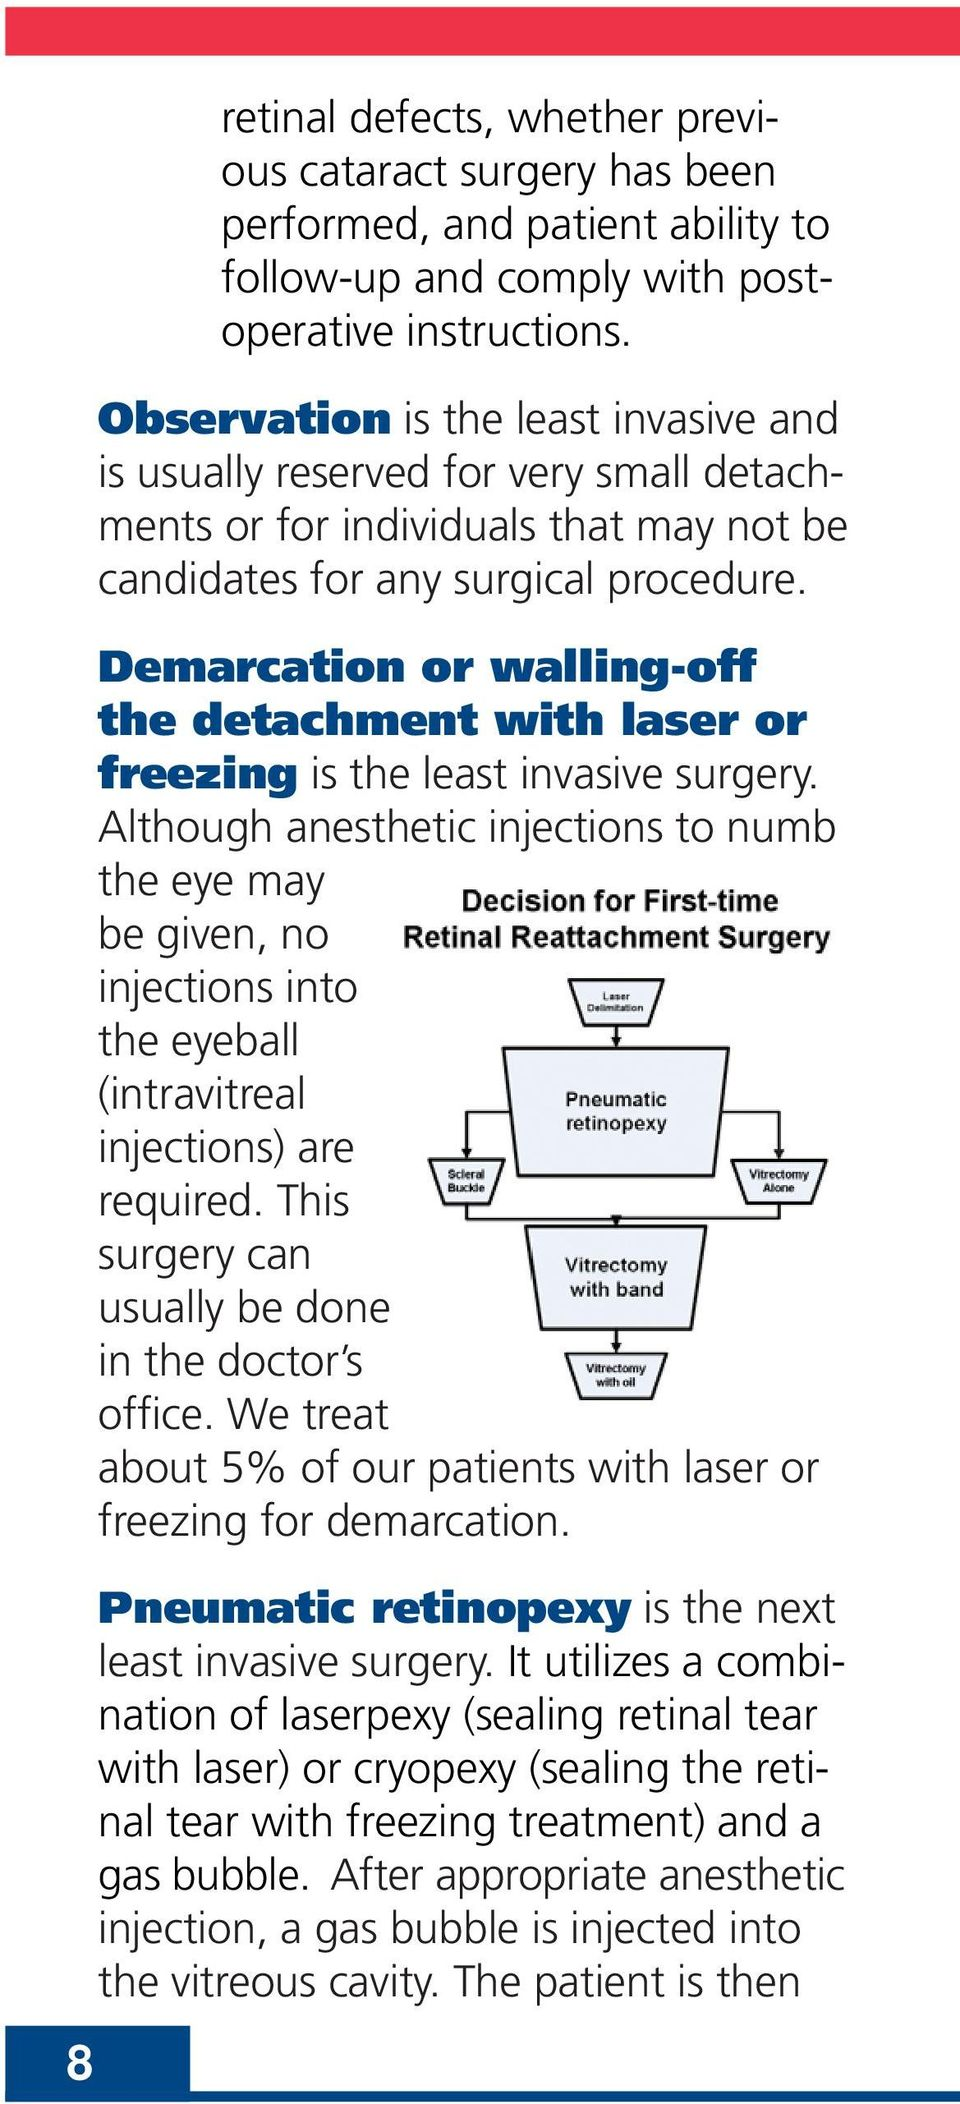 Demarcation or walling-off the detachment with laser or freezing is the least invasive surgery.